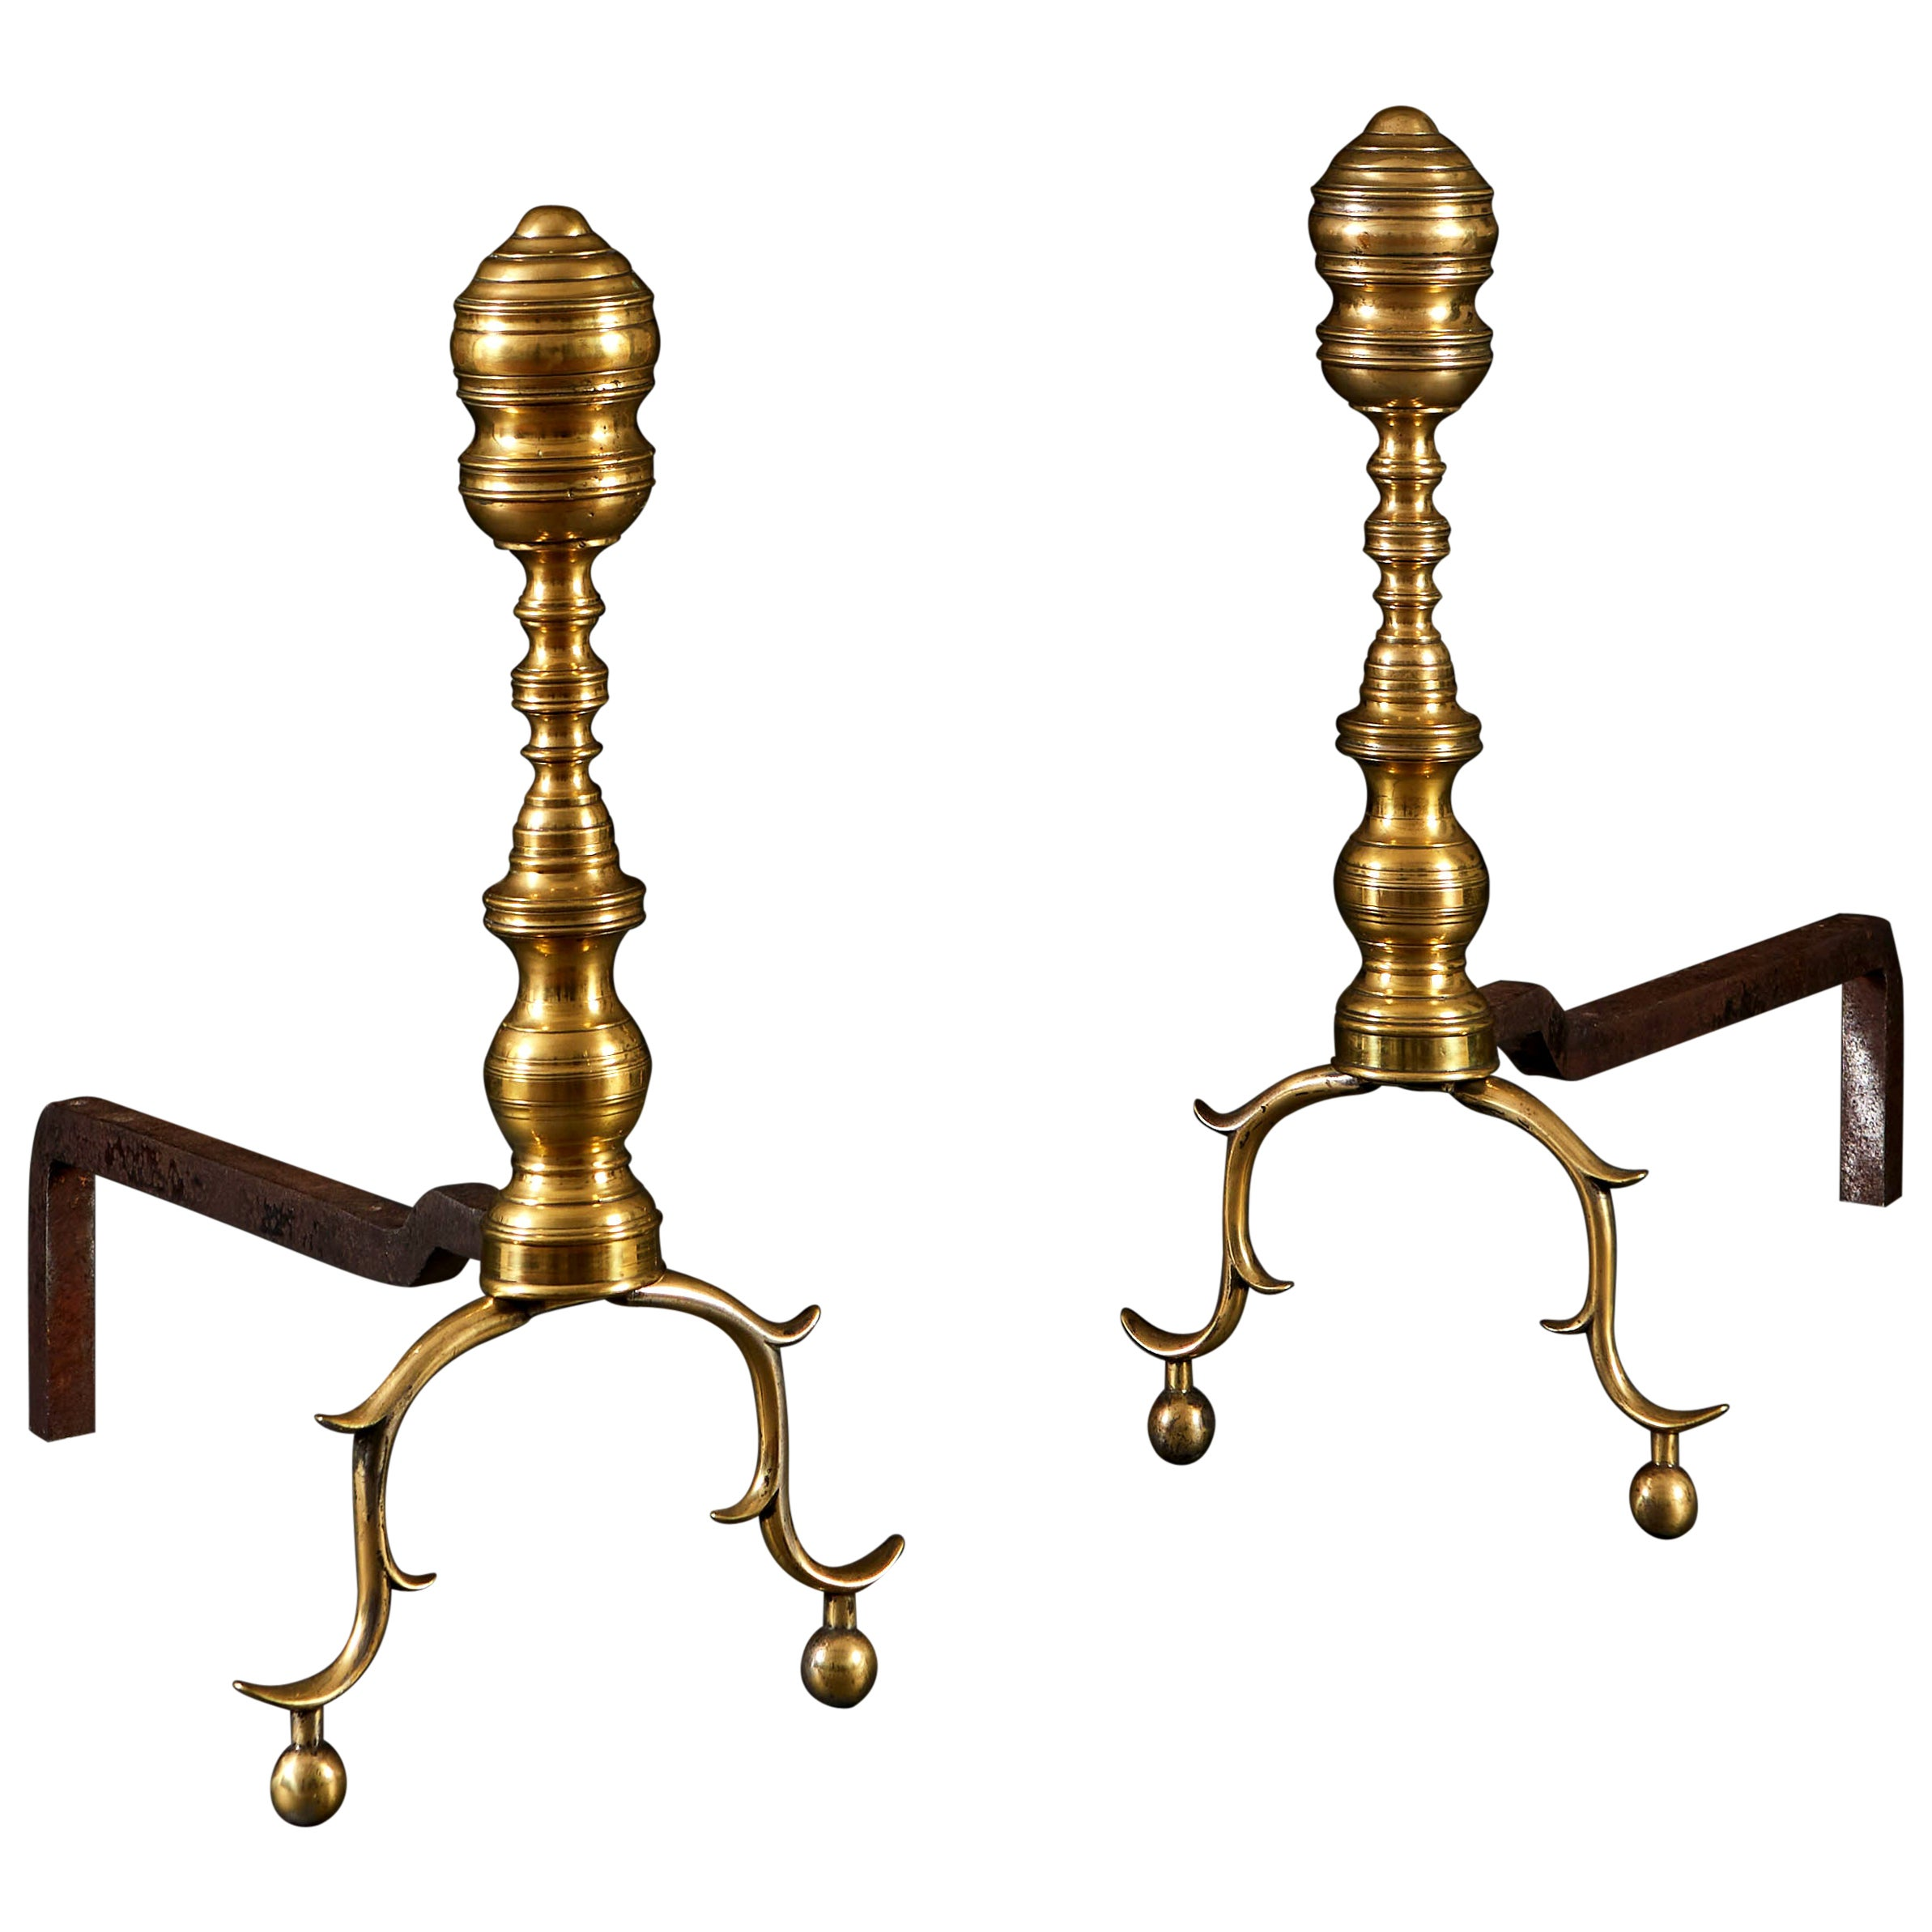 Pair of 19th Century American Brass Fire Dogs